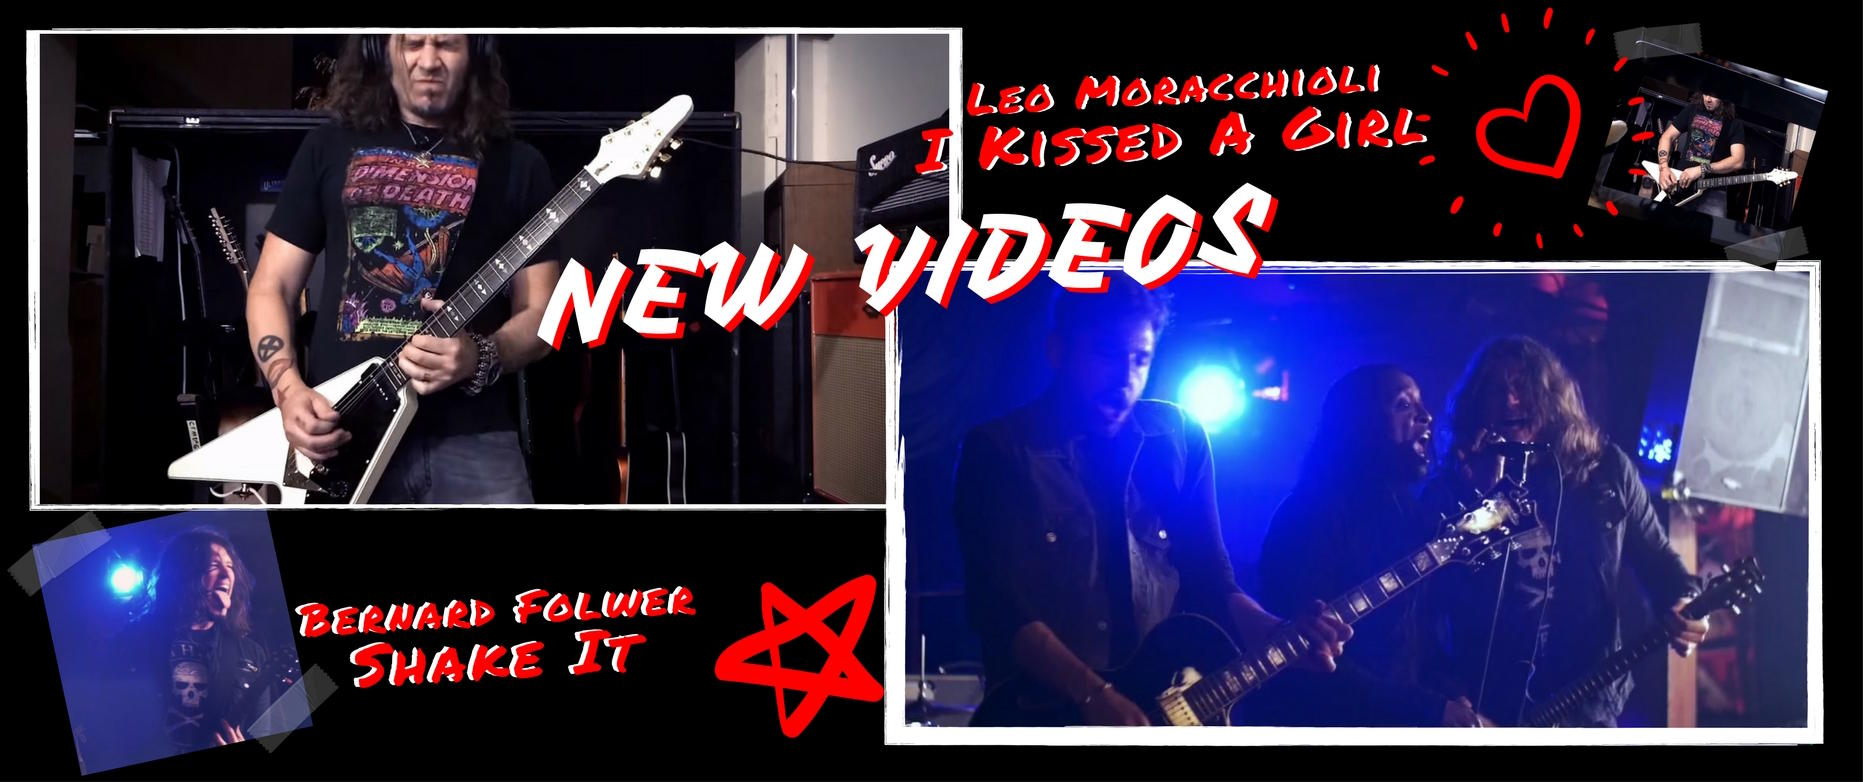 NEW Videos featuring Phil X